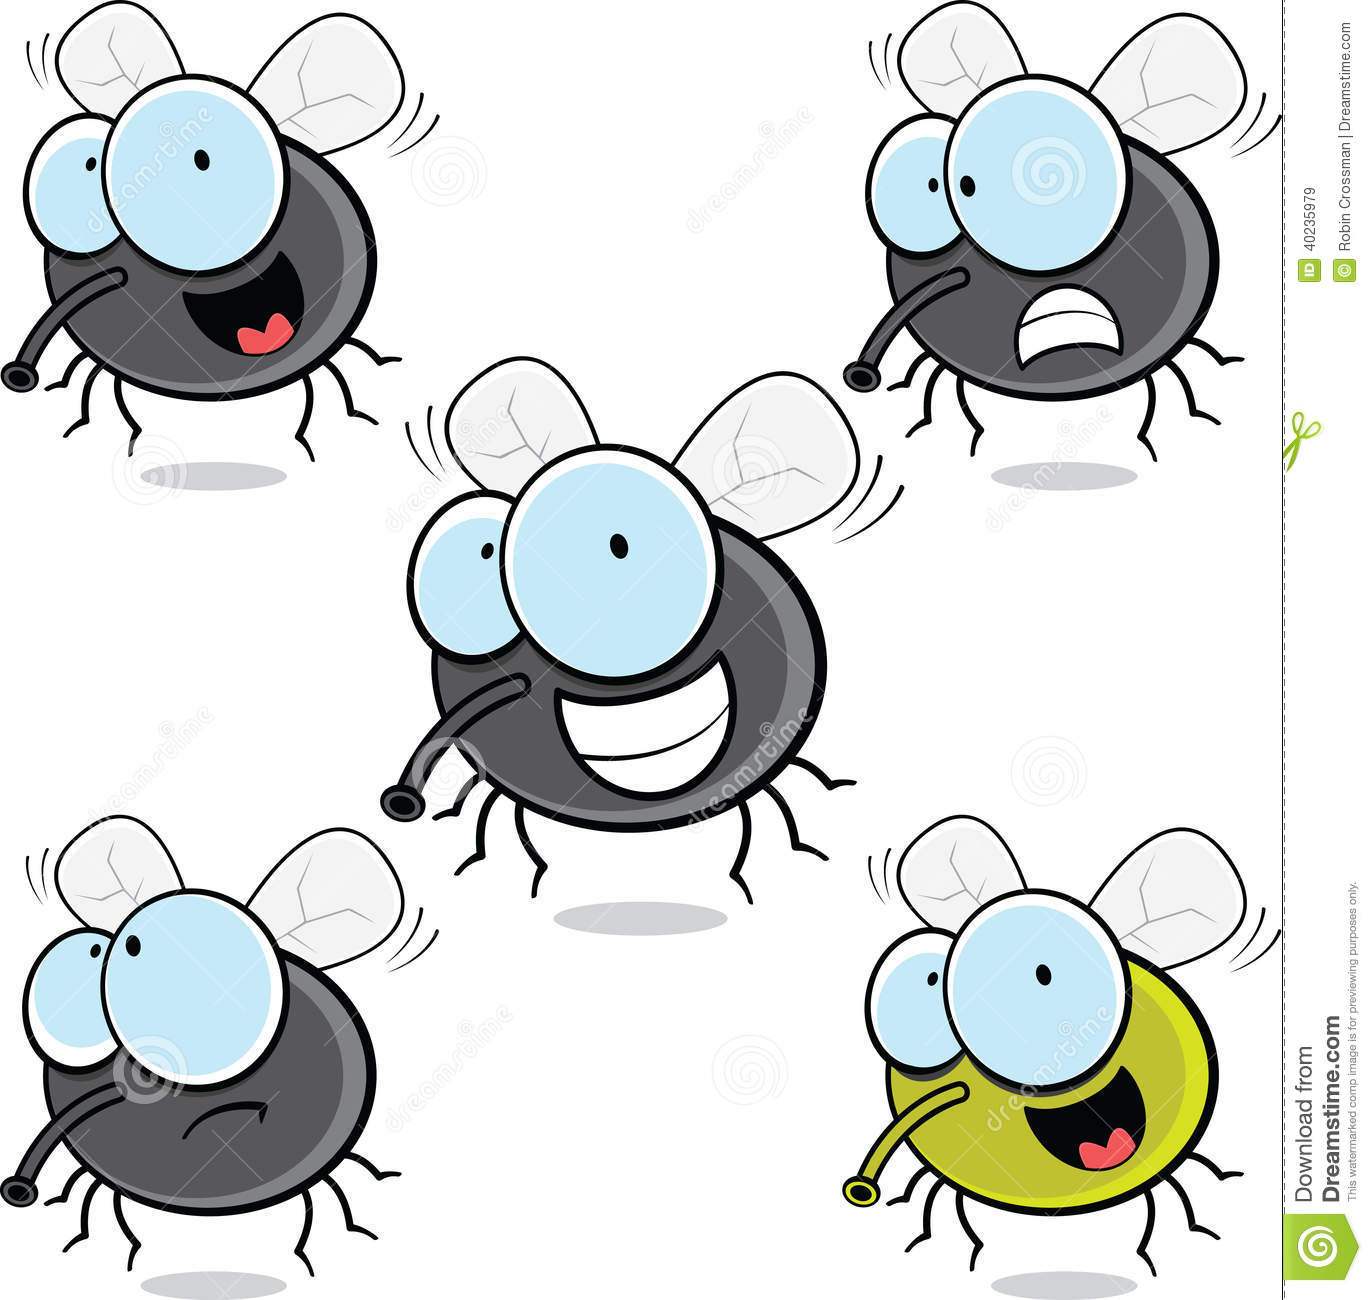 fruit fly clipart - photo #37